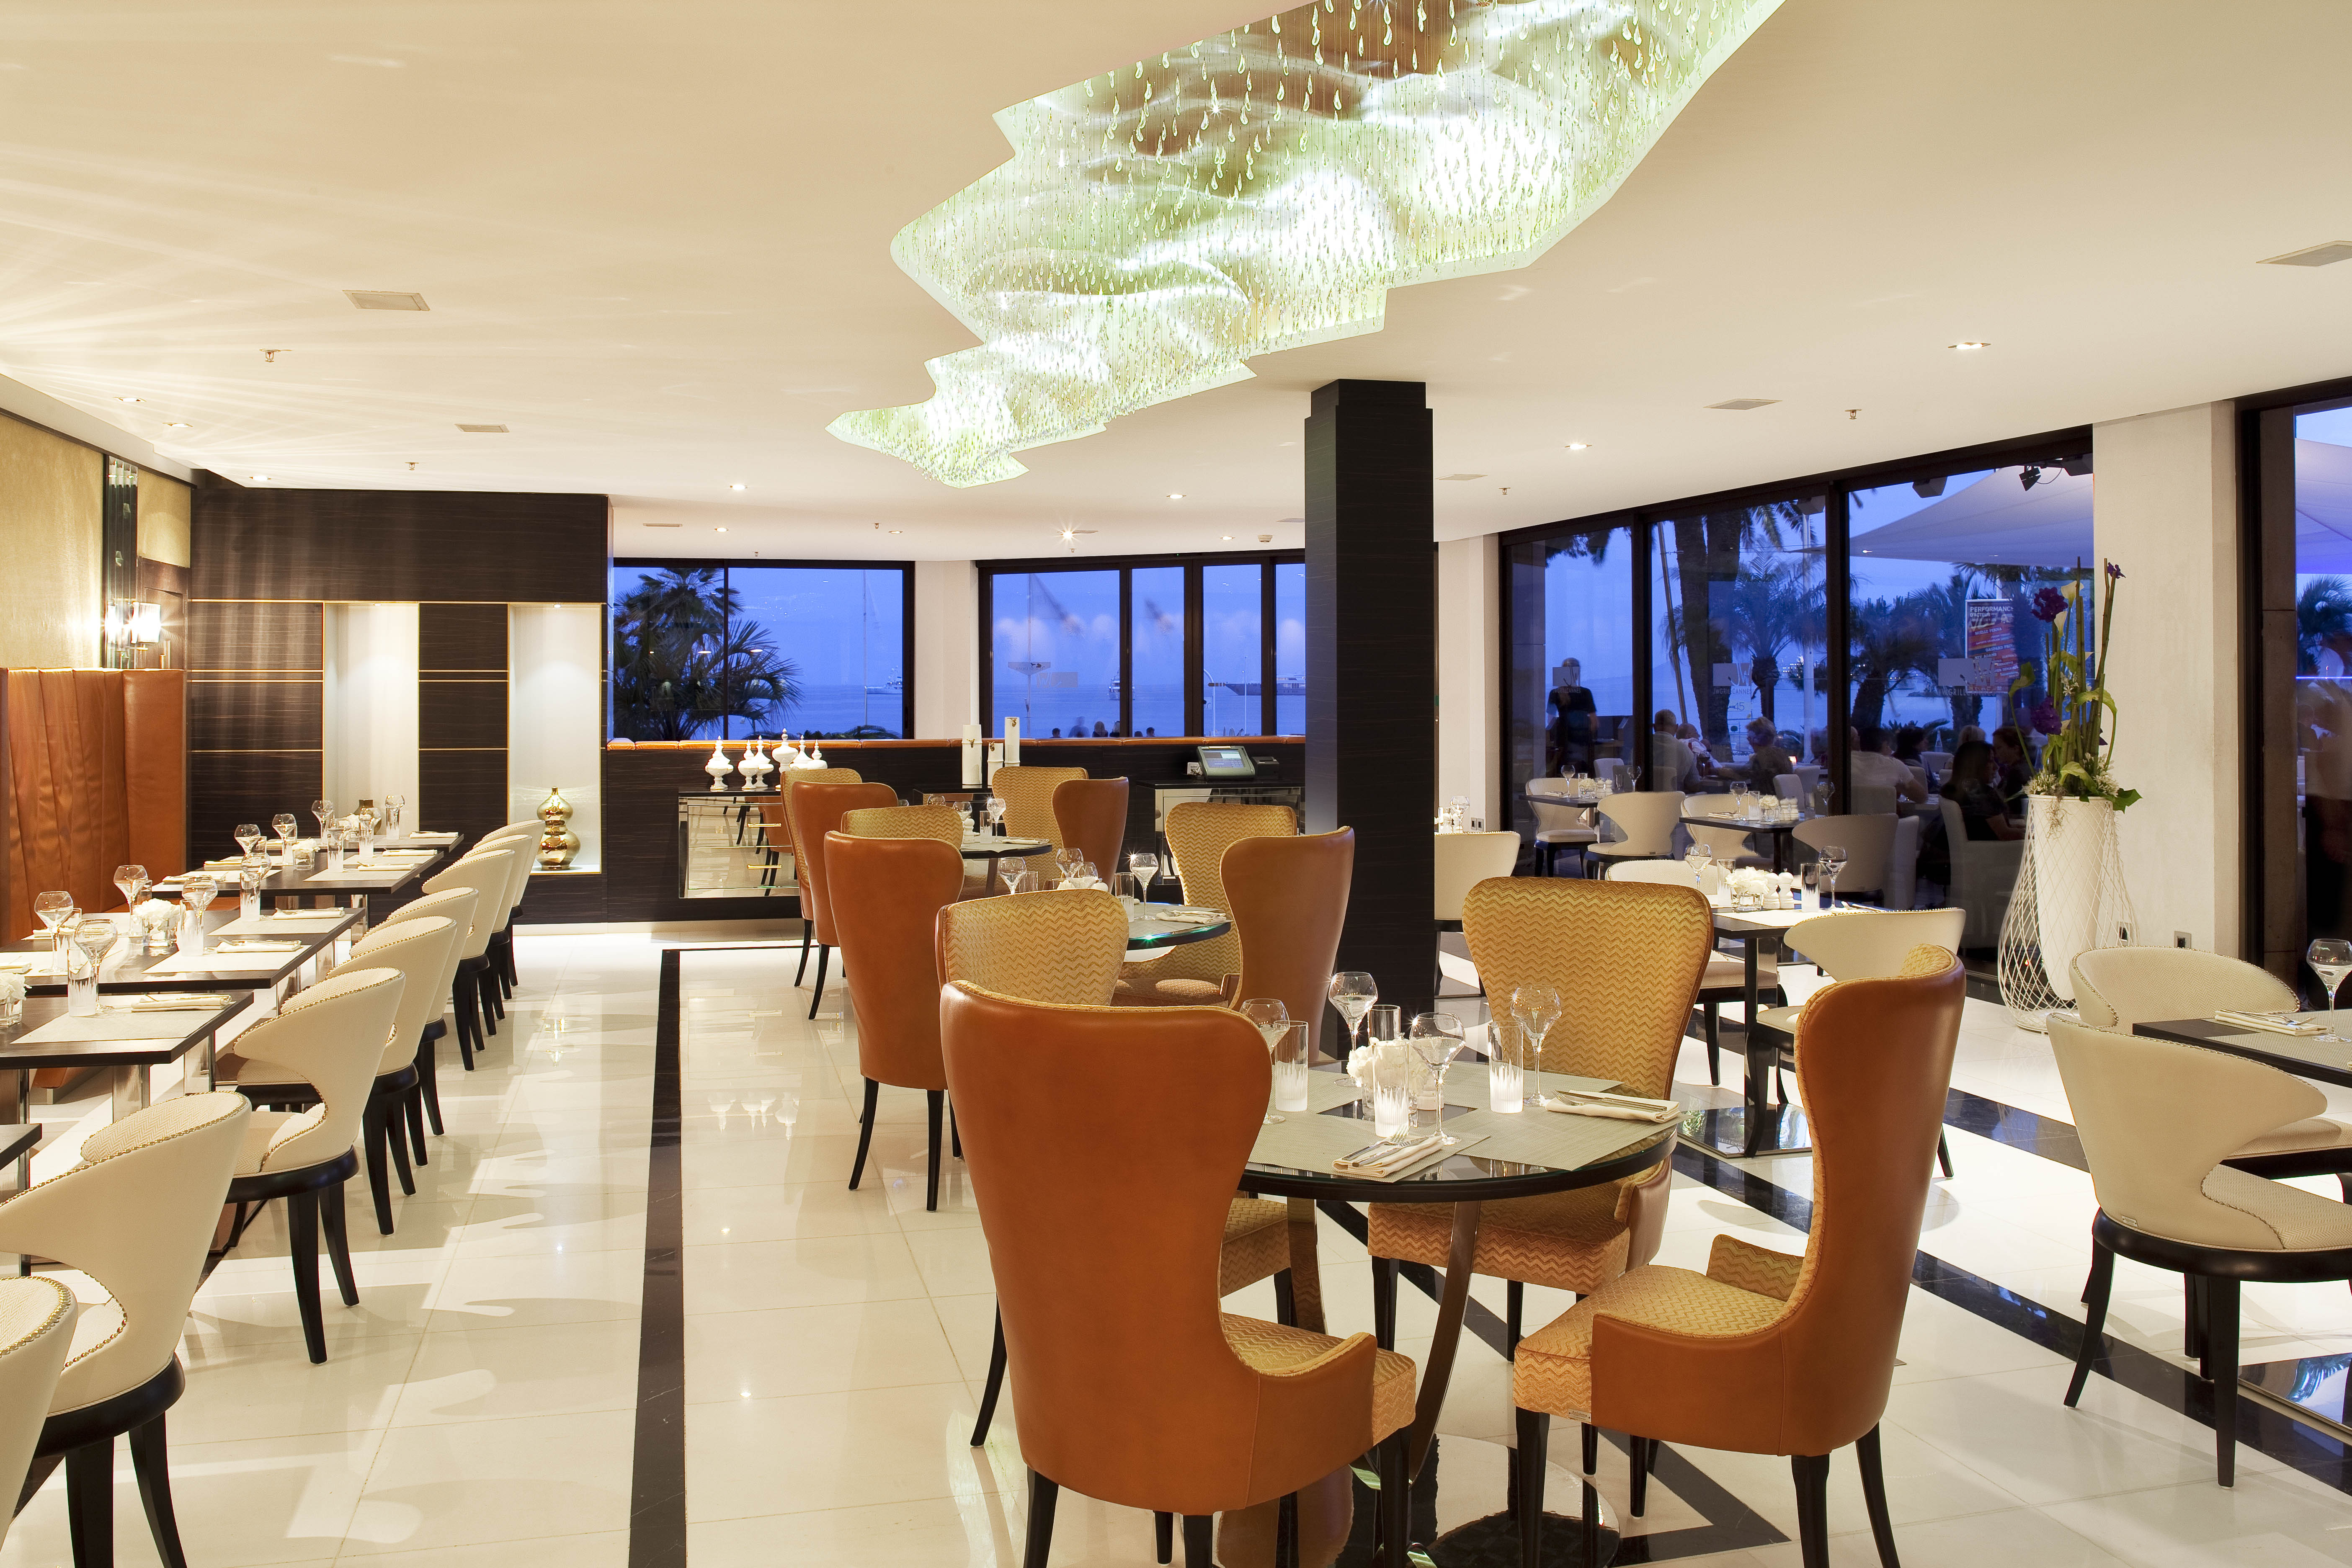 jw,cannes-france-le grill-66 md